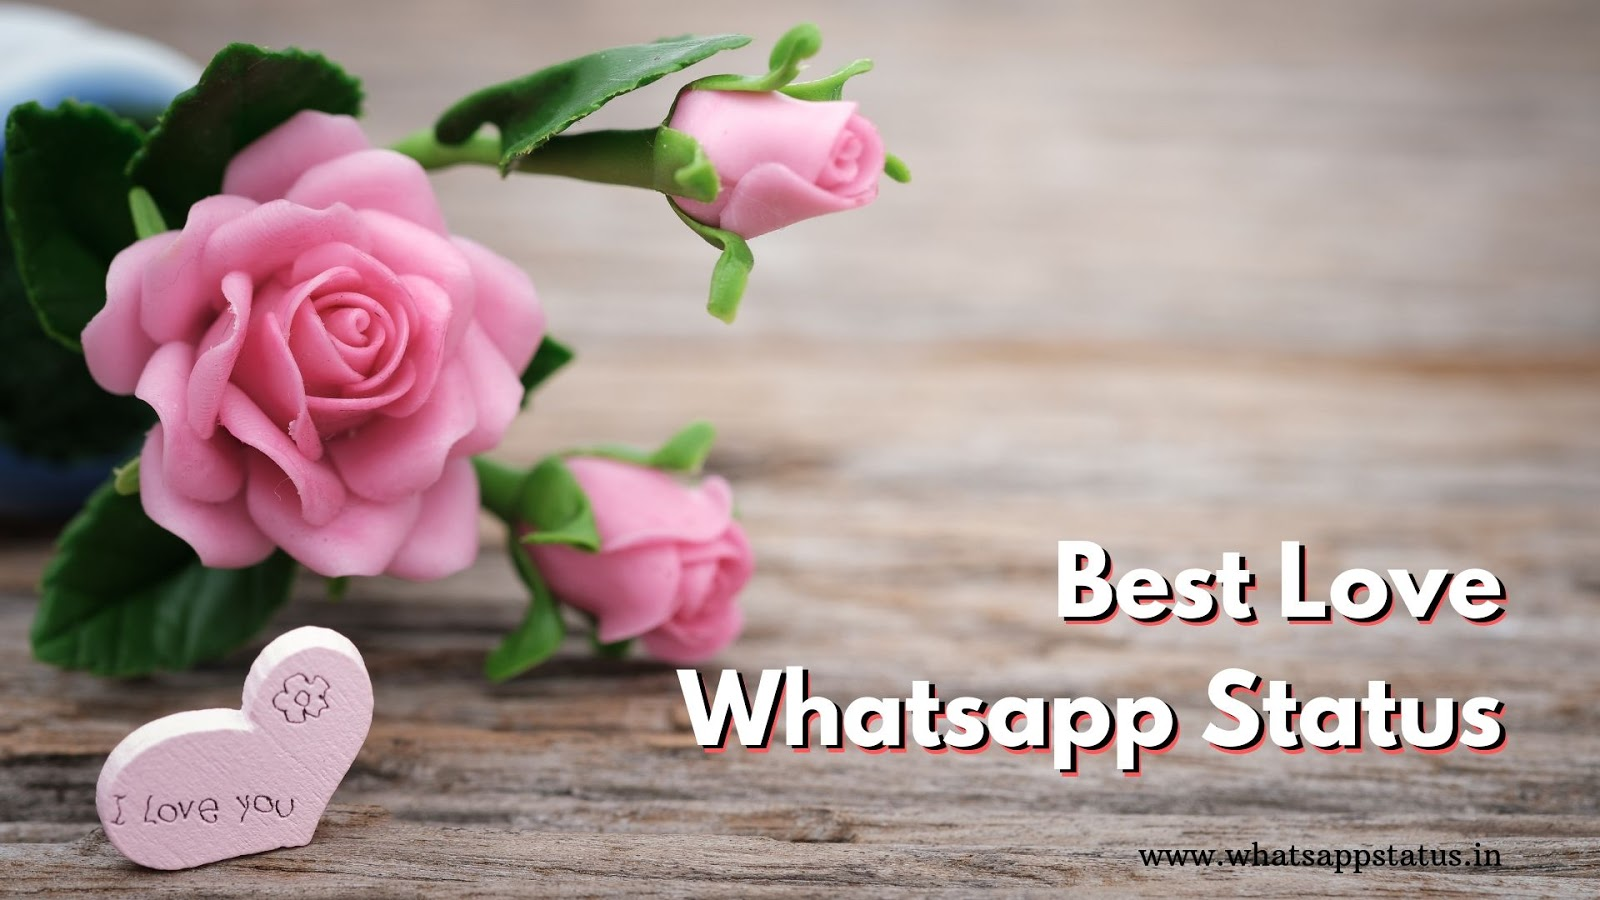 Best Love Whatsapp Status Quotes And Messages In English